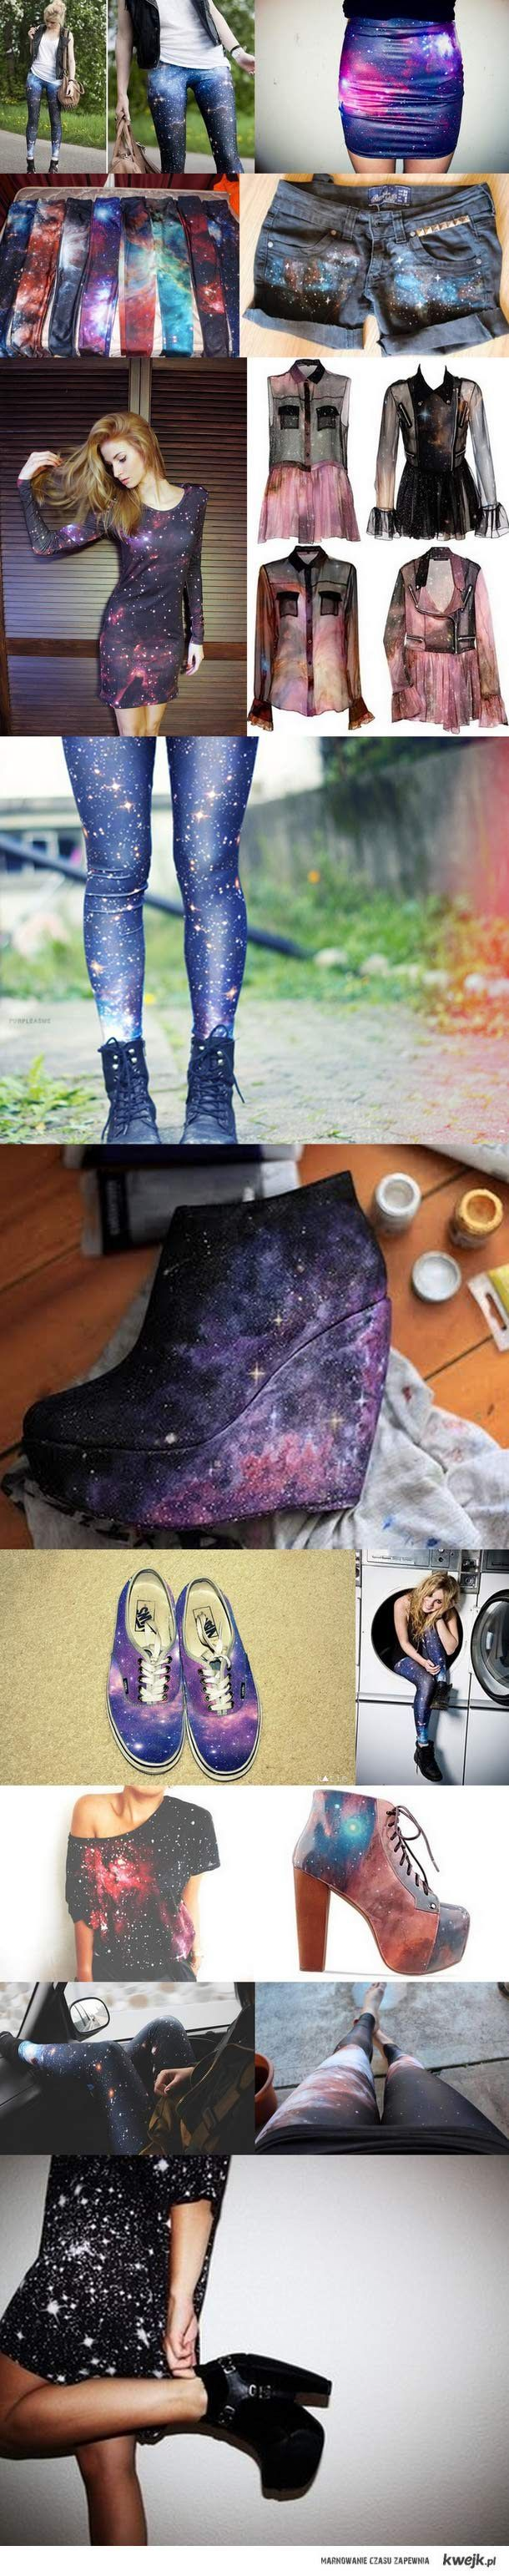 galaxy. i have yet to own anything in the galaxy pattern and it makes me very upset X[